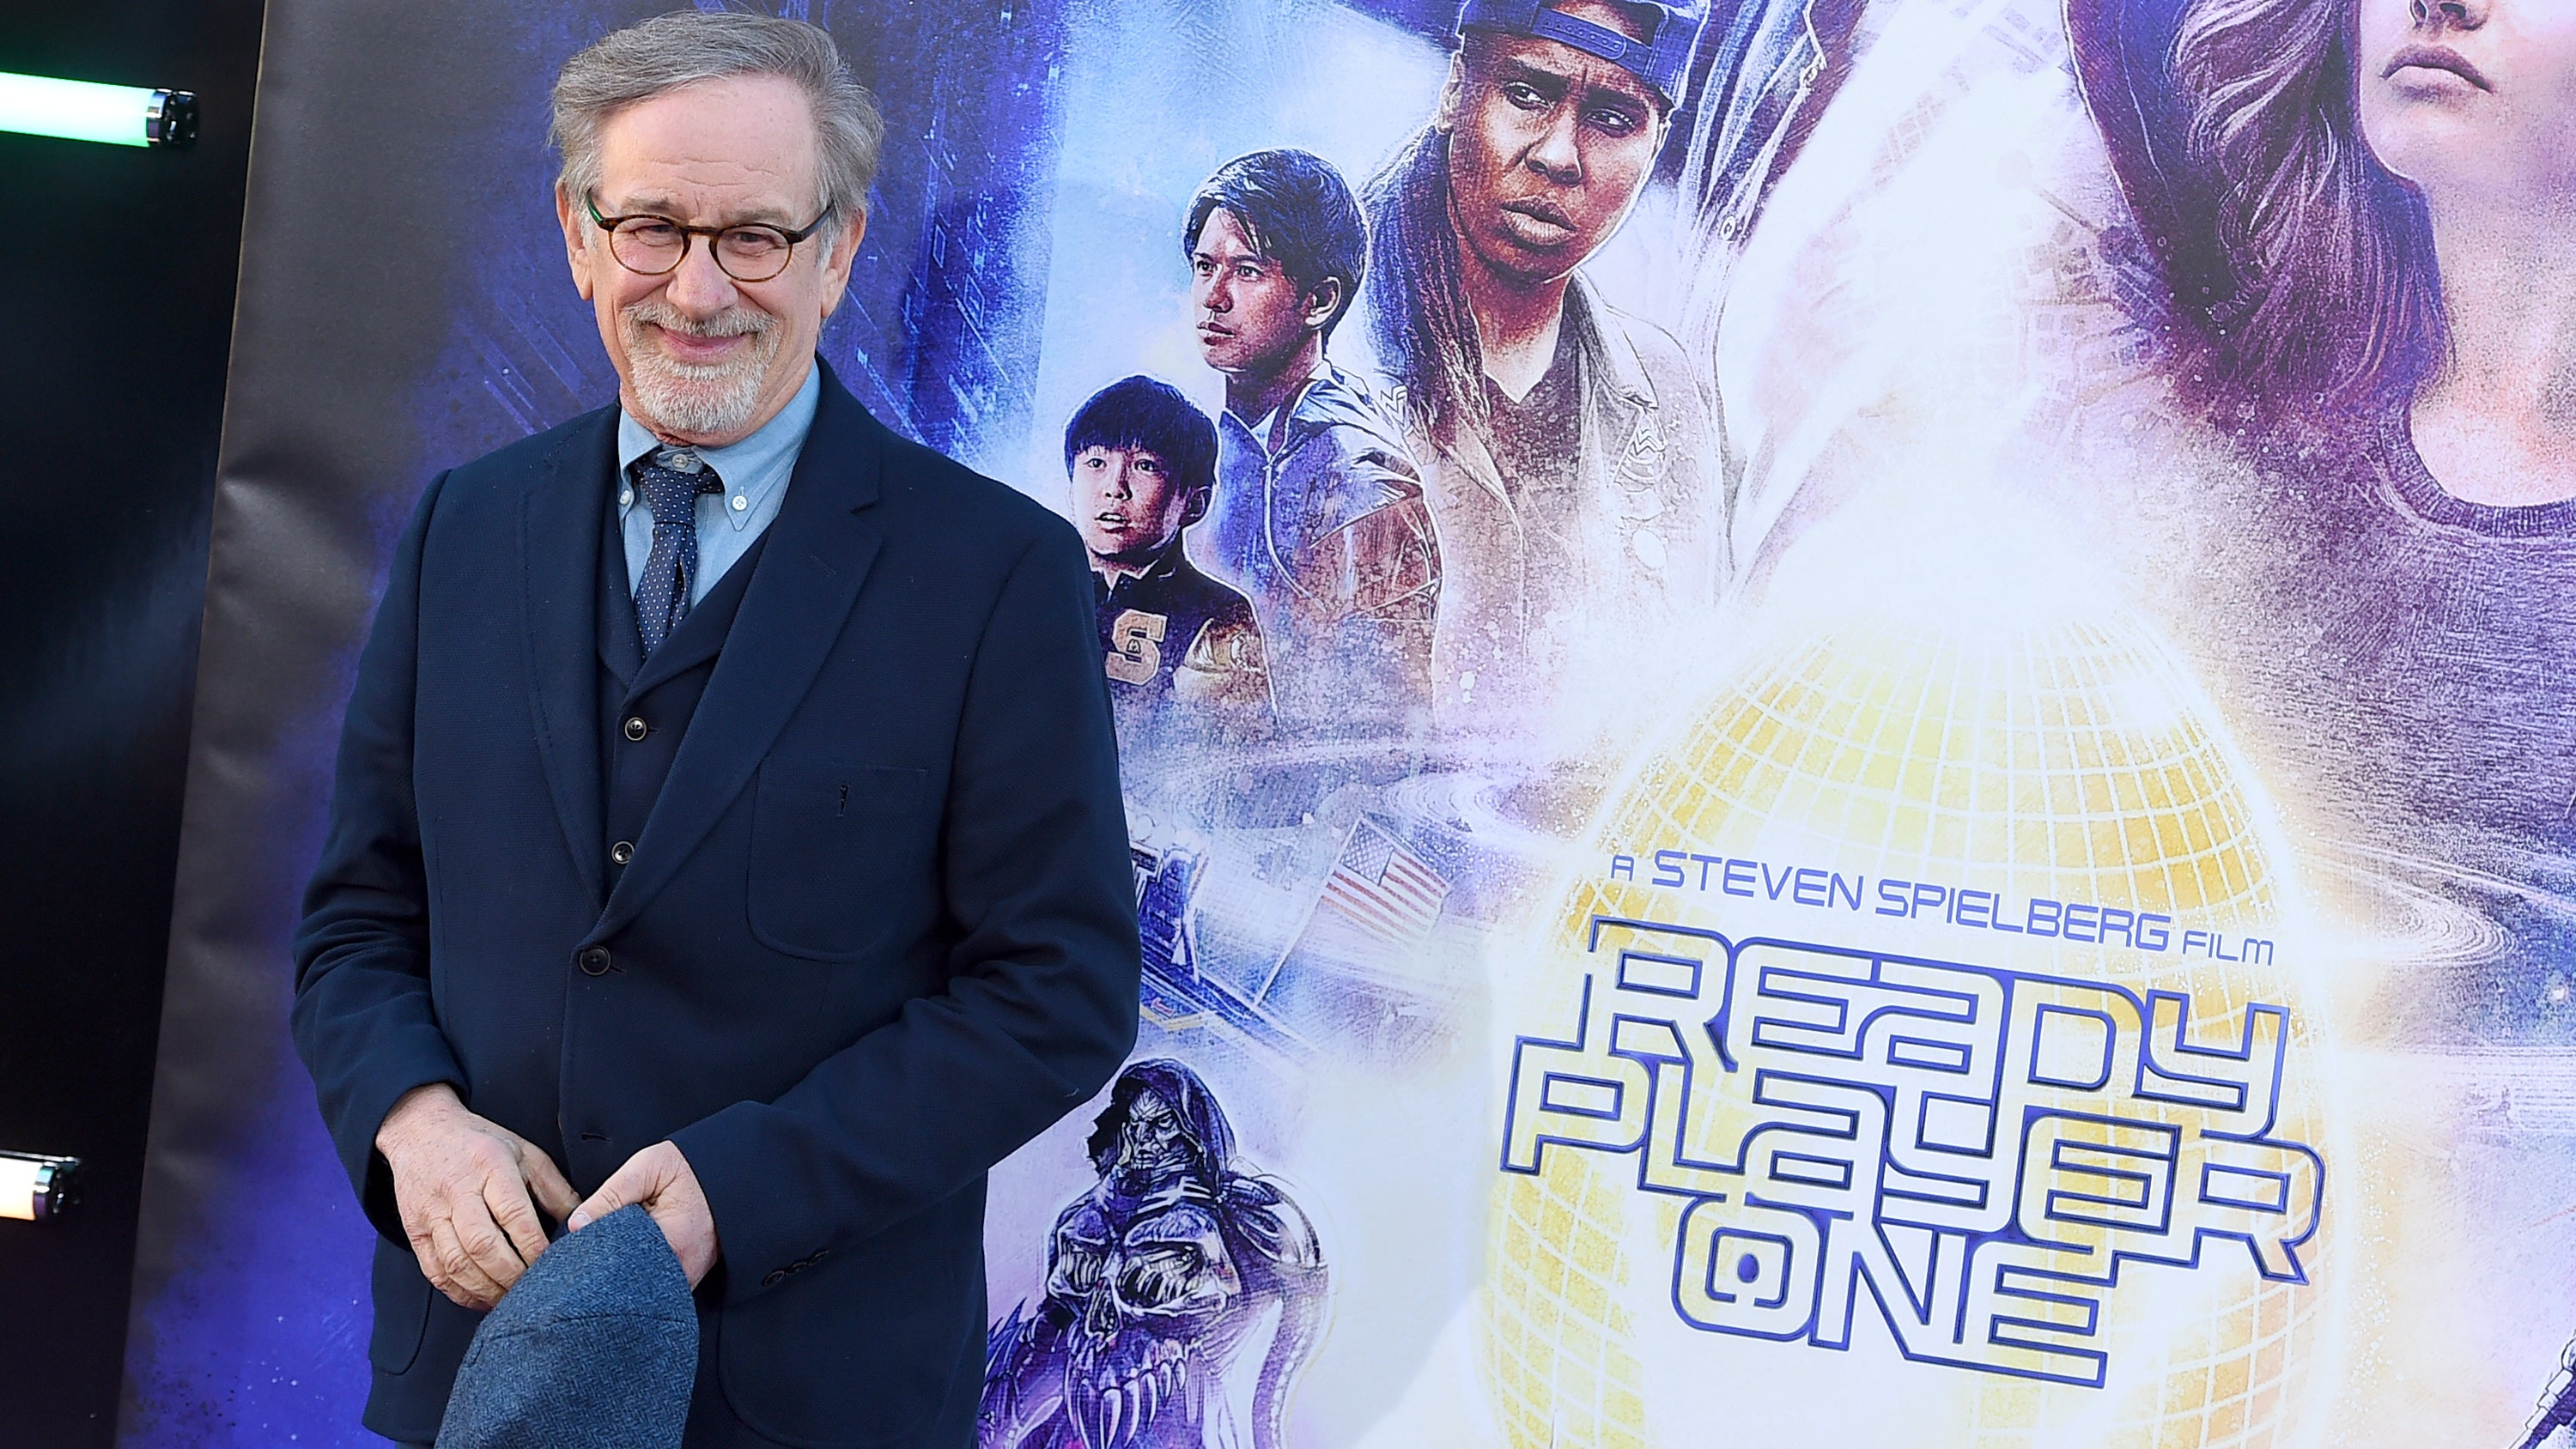 Does Ready Player OneDirector Steven Spielberg Know What The Heck A Playstation Is?